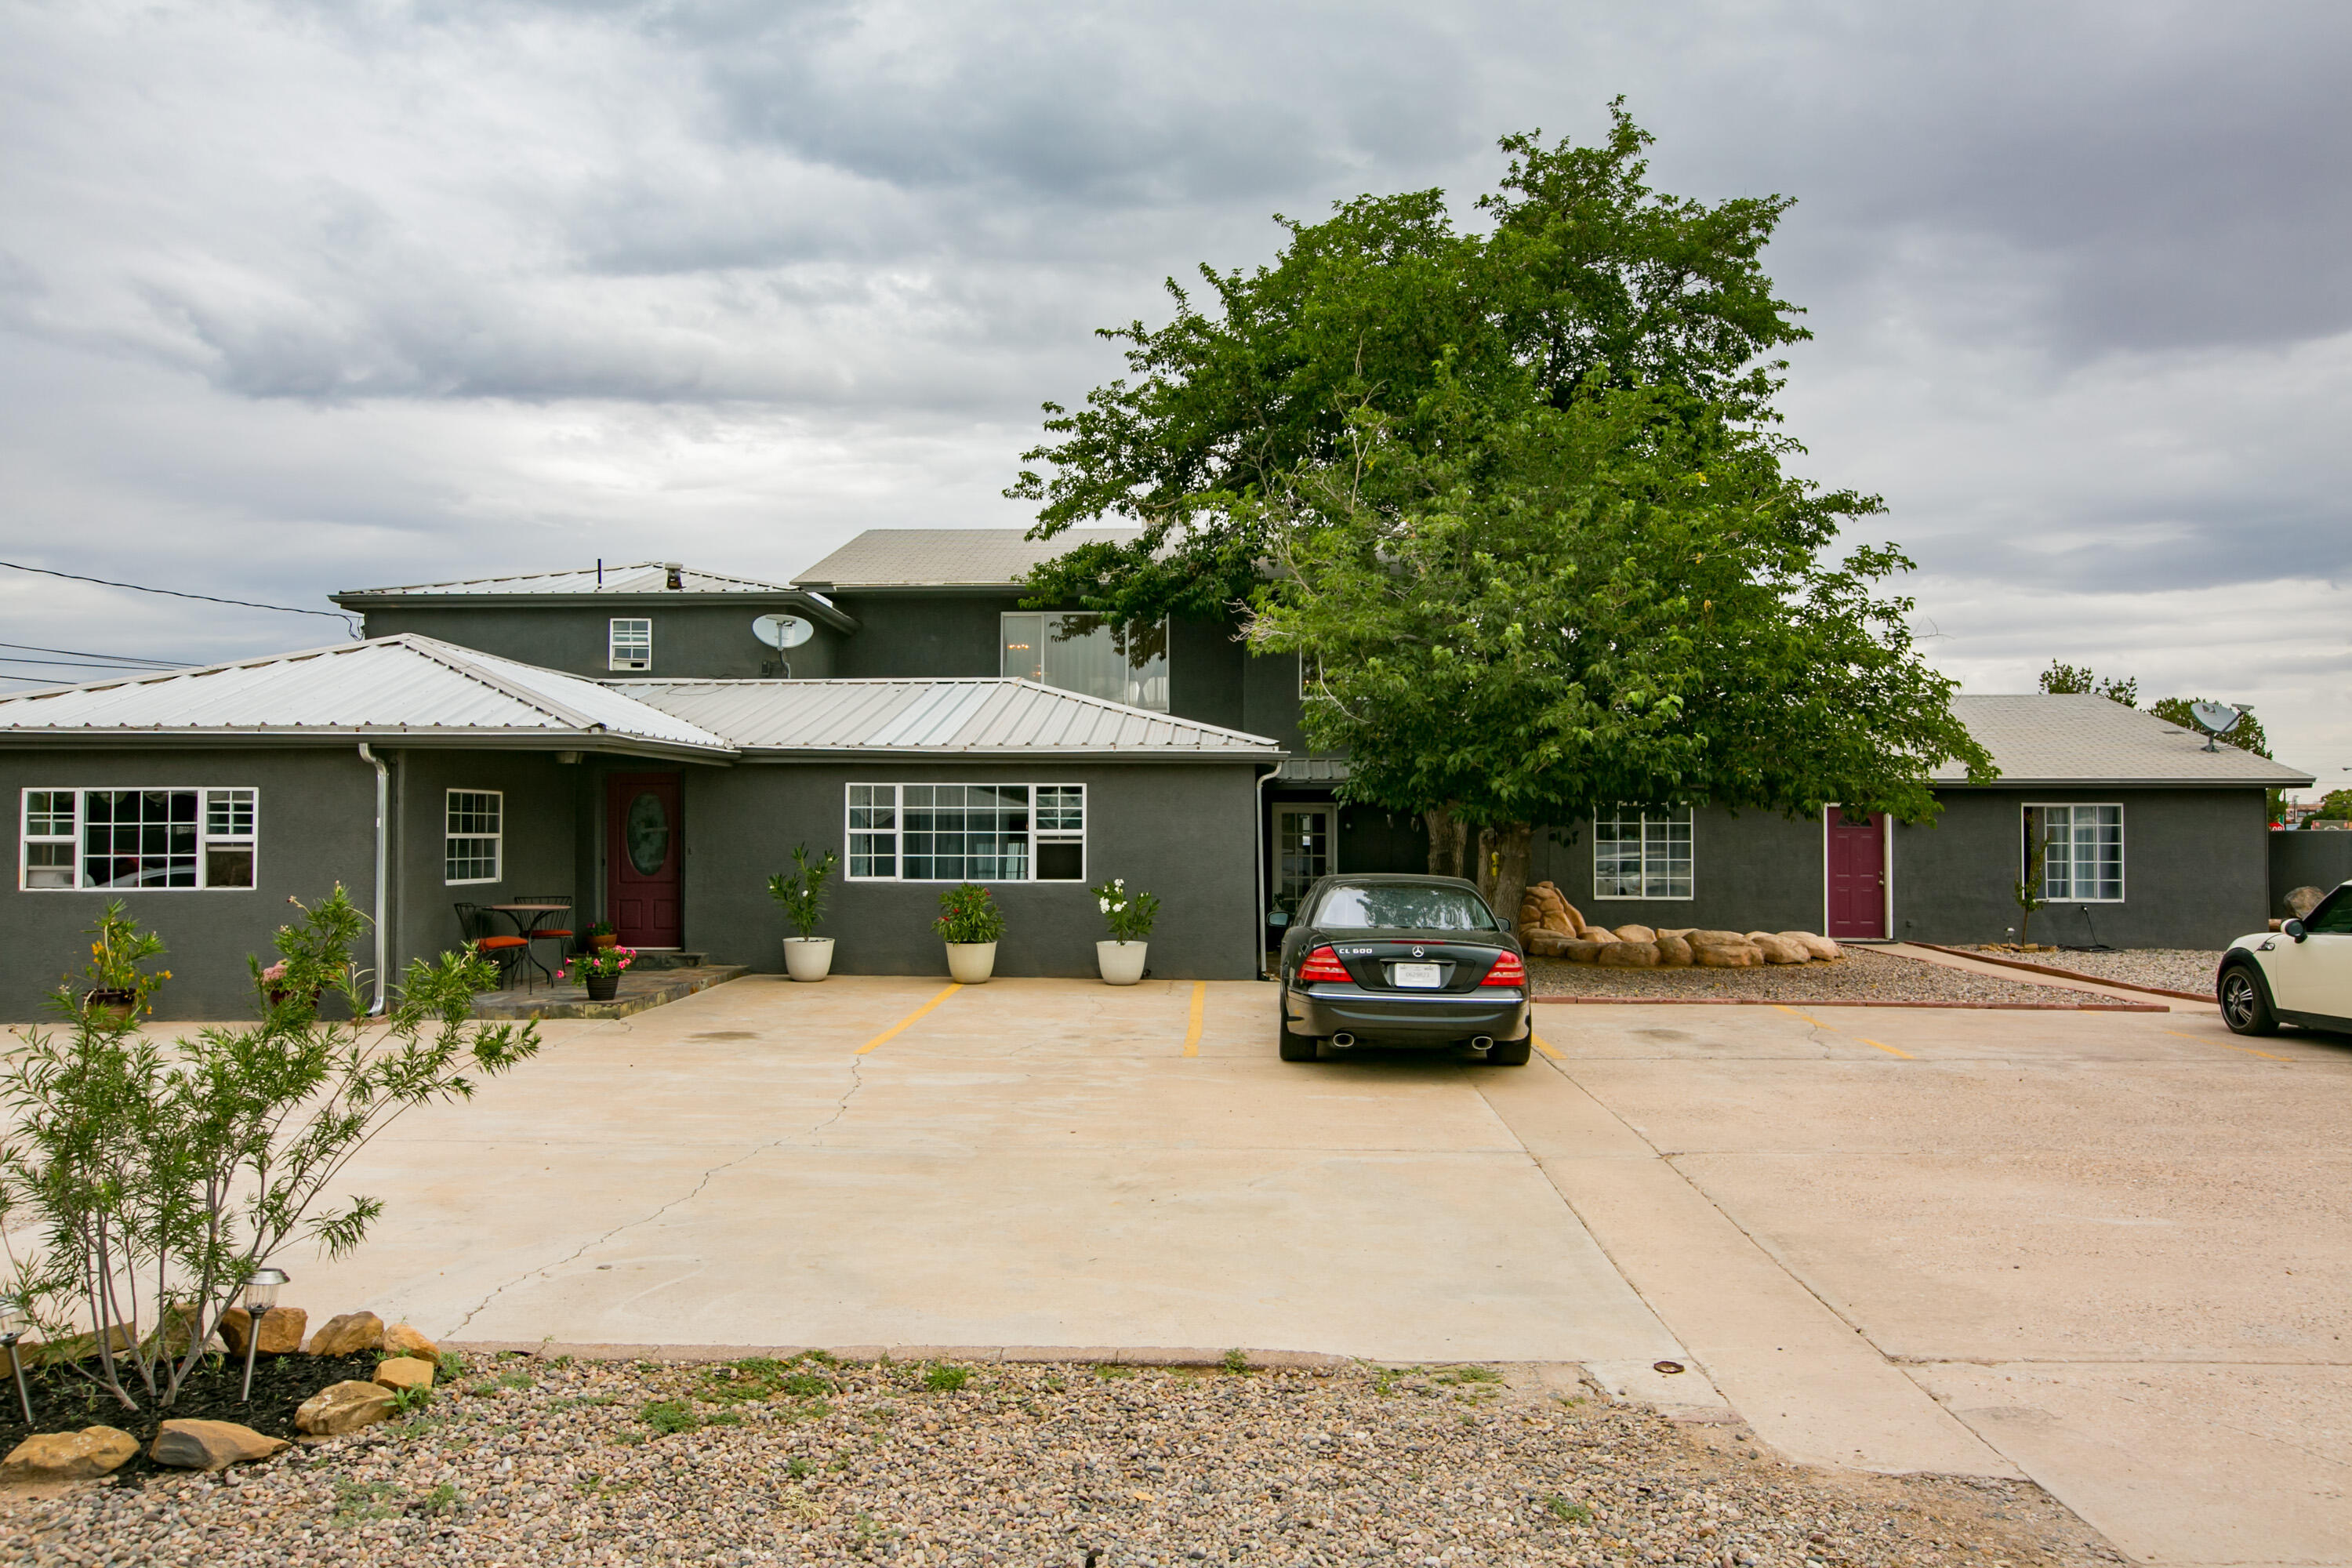 Open house this Wednesday 10/20 4-6 pm. Price Reduced, Offer Now! This gated estate, located in the North Valley, offers endless opportunities. Recently updated home has 8 bedrooms, 5 bathrooms, office, and multiple living areas and is perfect for a large, extended family (with in-law quarters) or multi-generational living.  Possible income producer (bed and breakfast, AirBNB, home sharing site, vacation rental site, assisted living, or group home).  Close to restaurants and breweries.